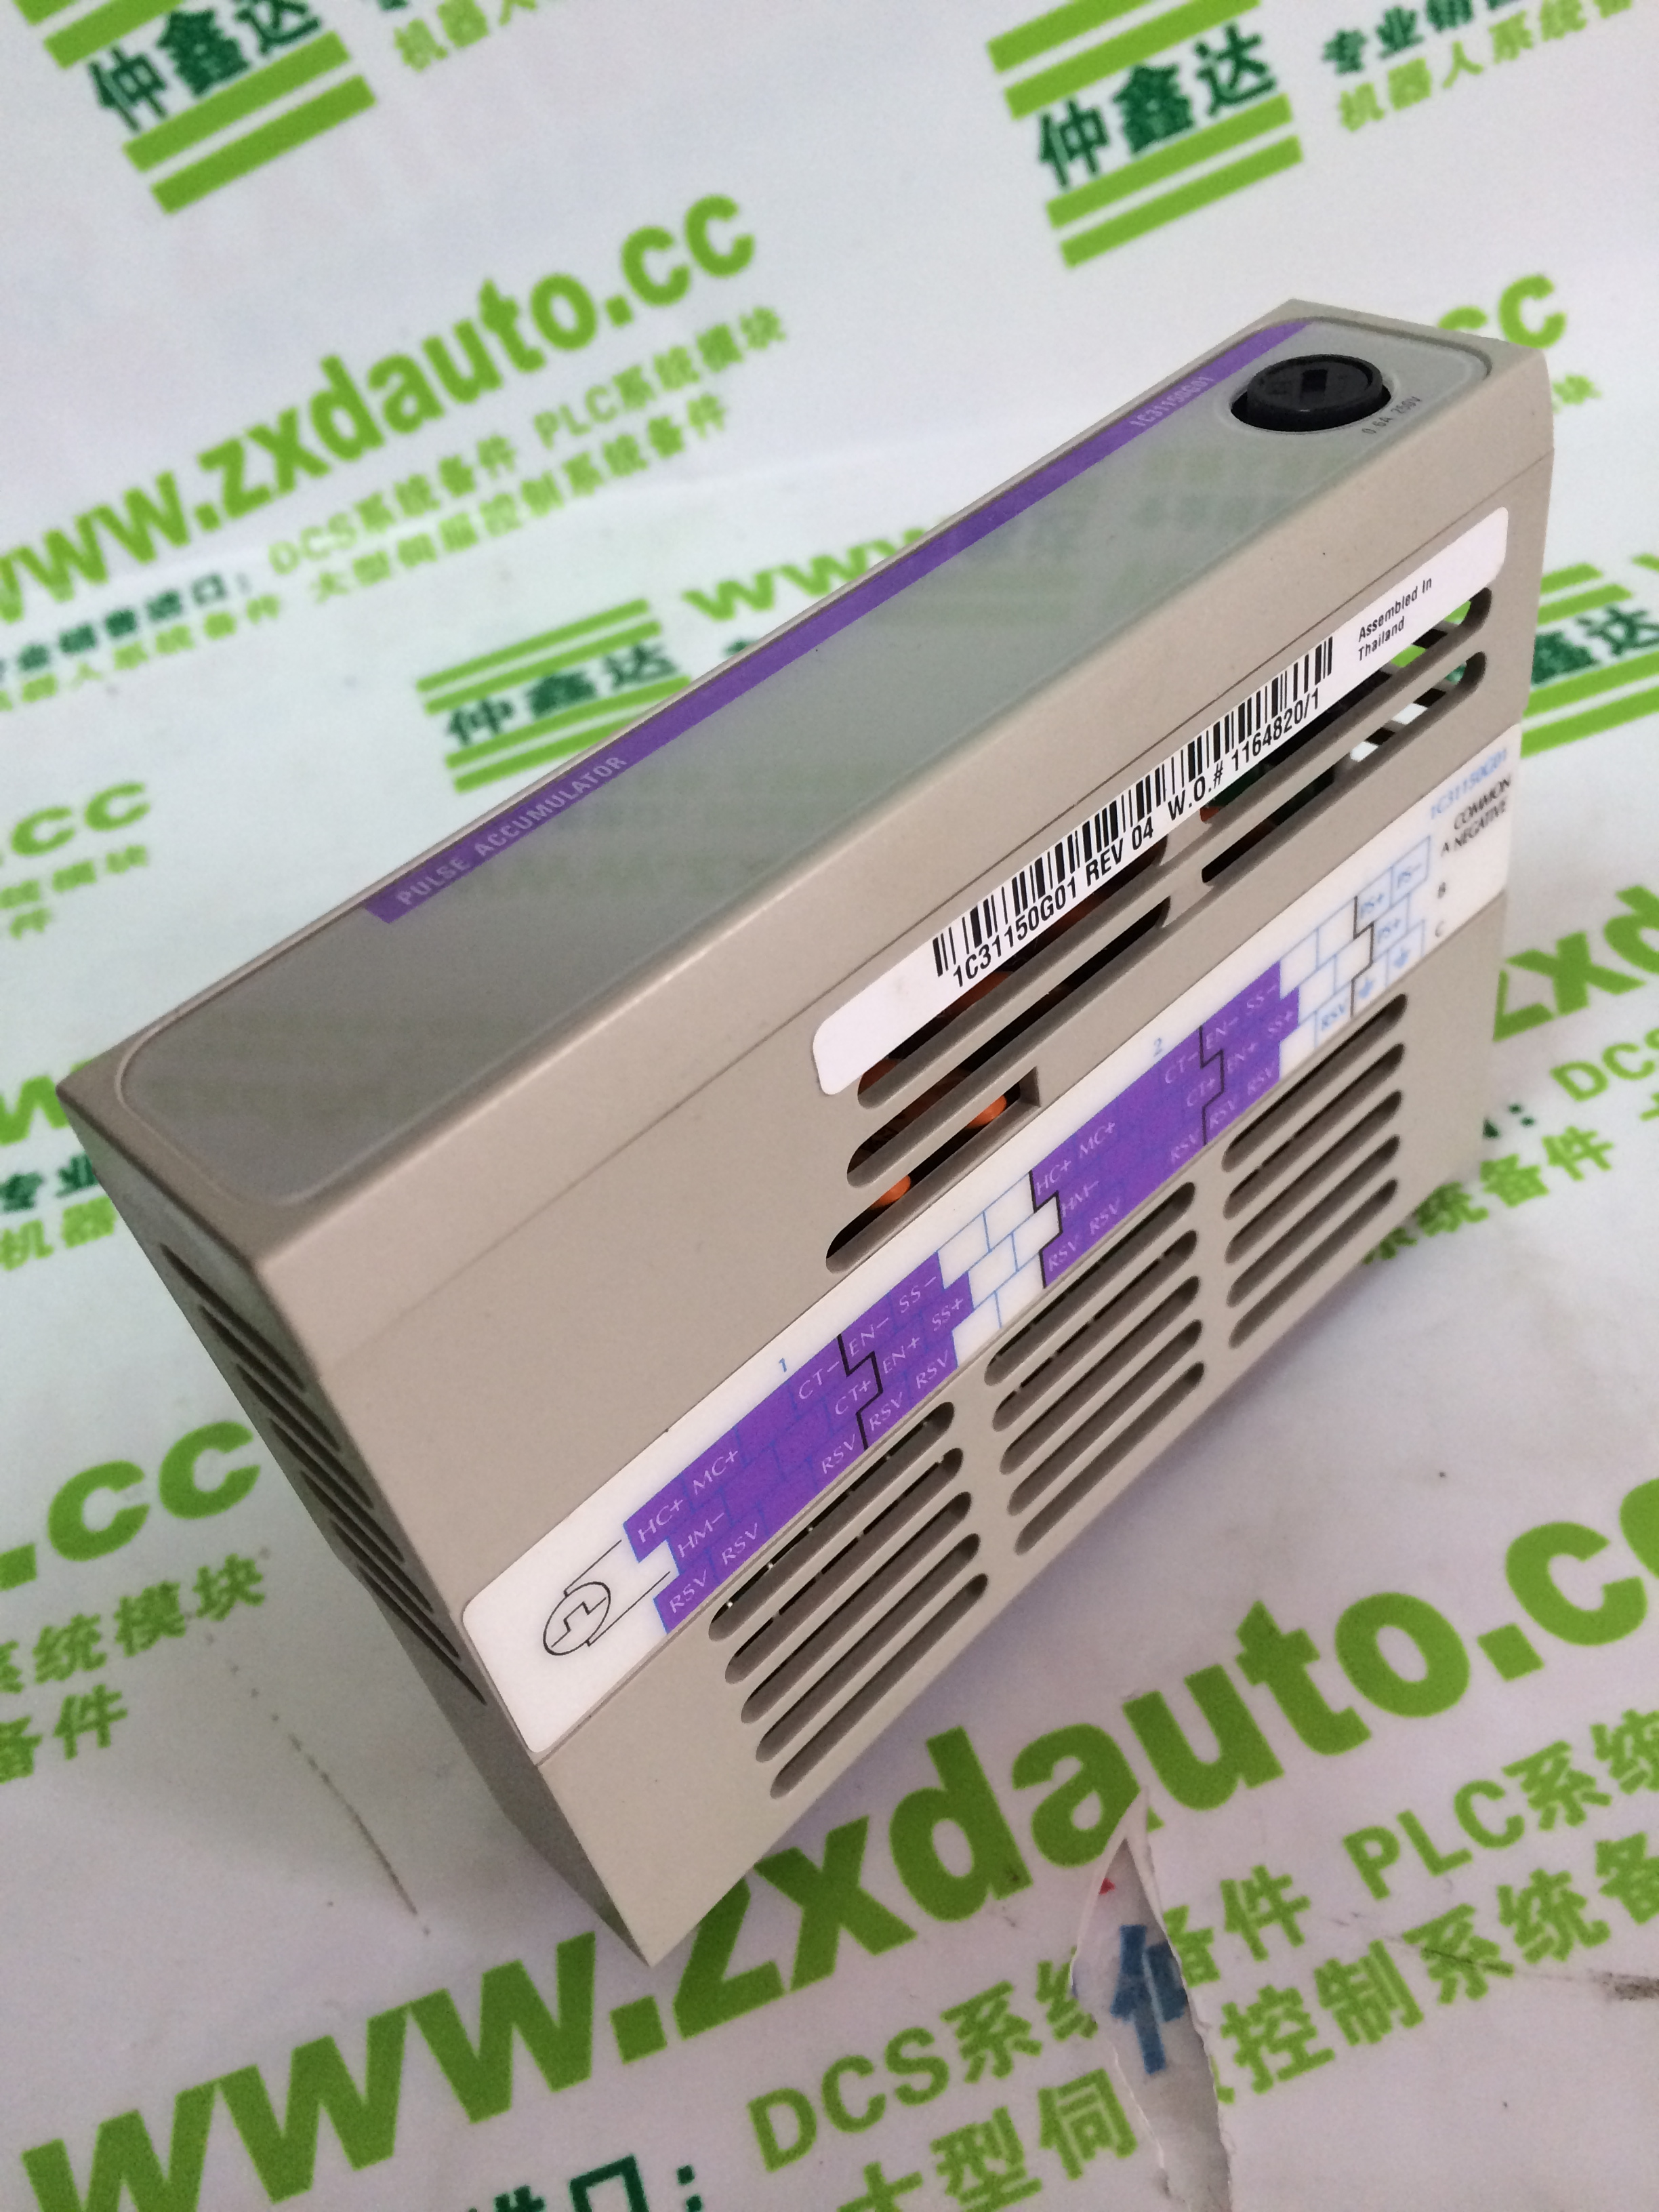 ASSY179750-01 179752-01 GPIB-796 National Instruments